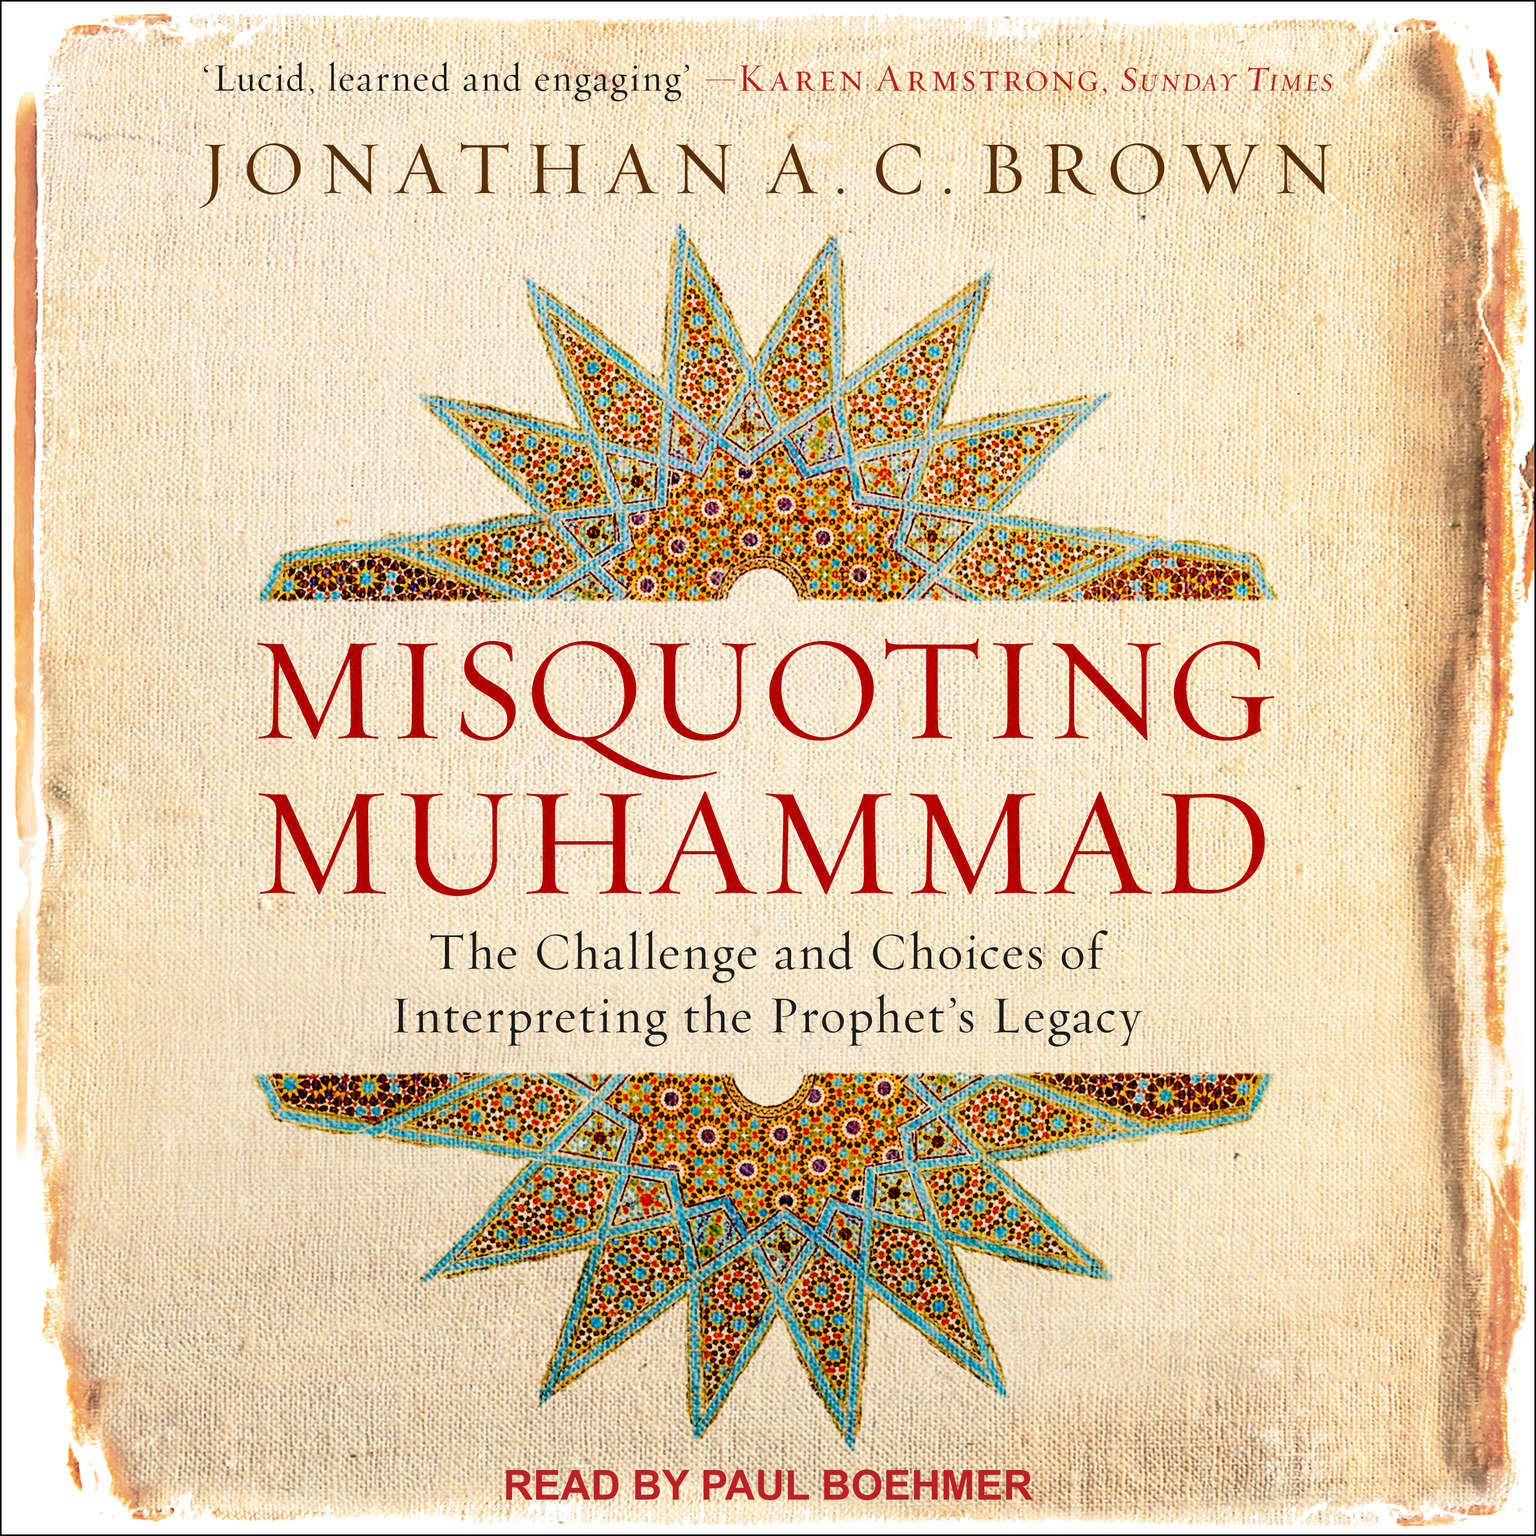 Misquoting Muhammad: The Challenge and Choices of Interpreting the Prophet's Legacy Audiobook, by Jonathan A. C. Brown